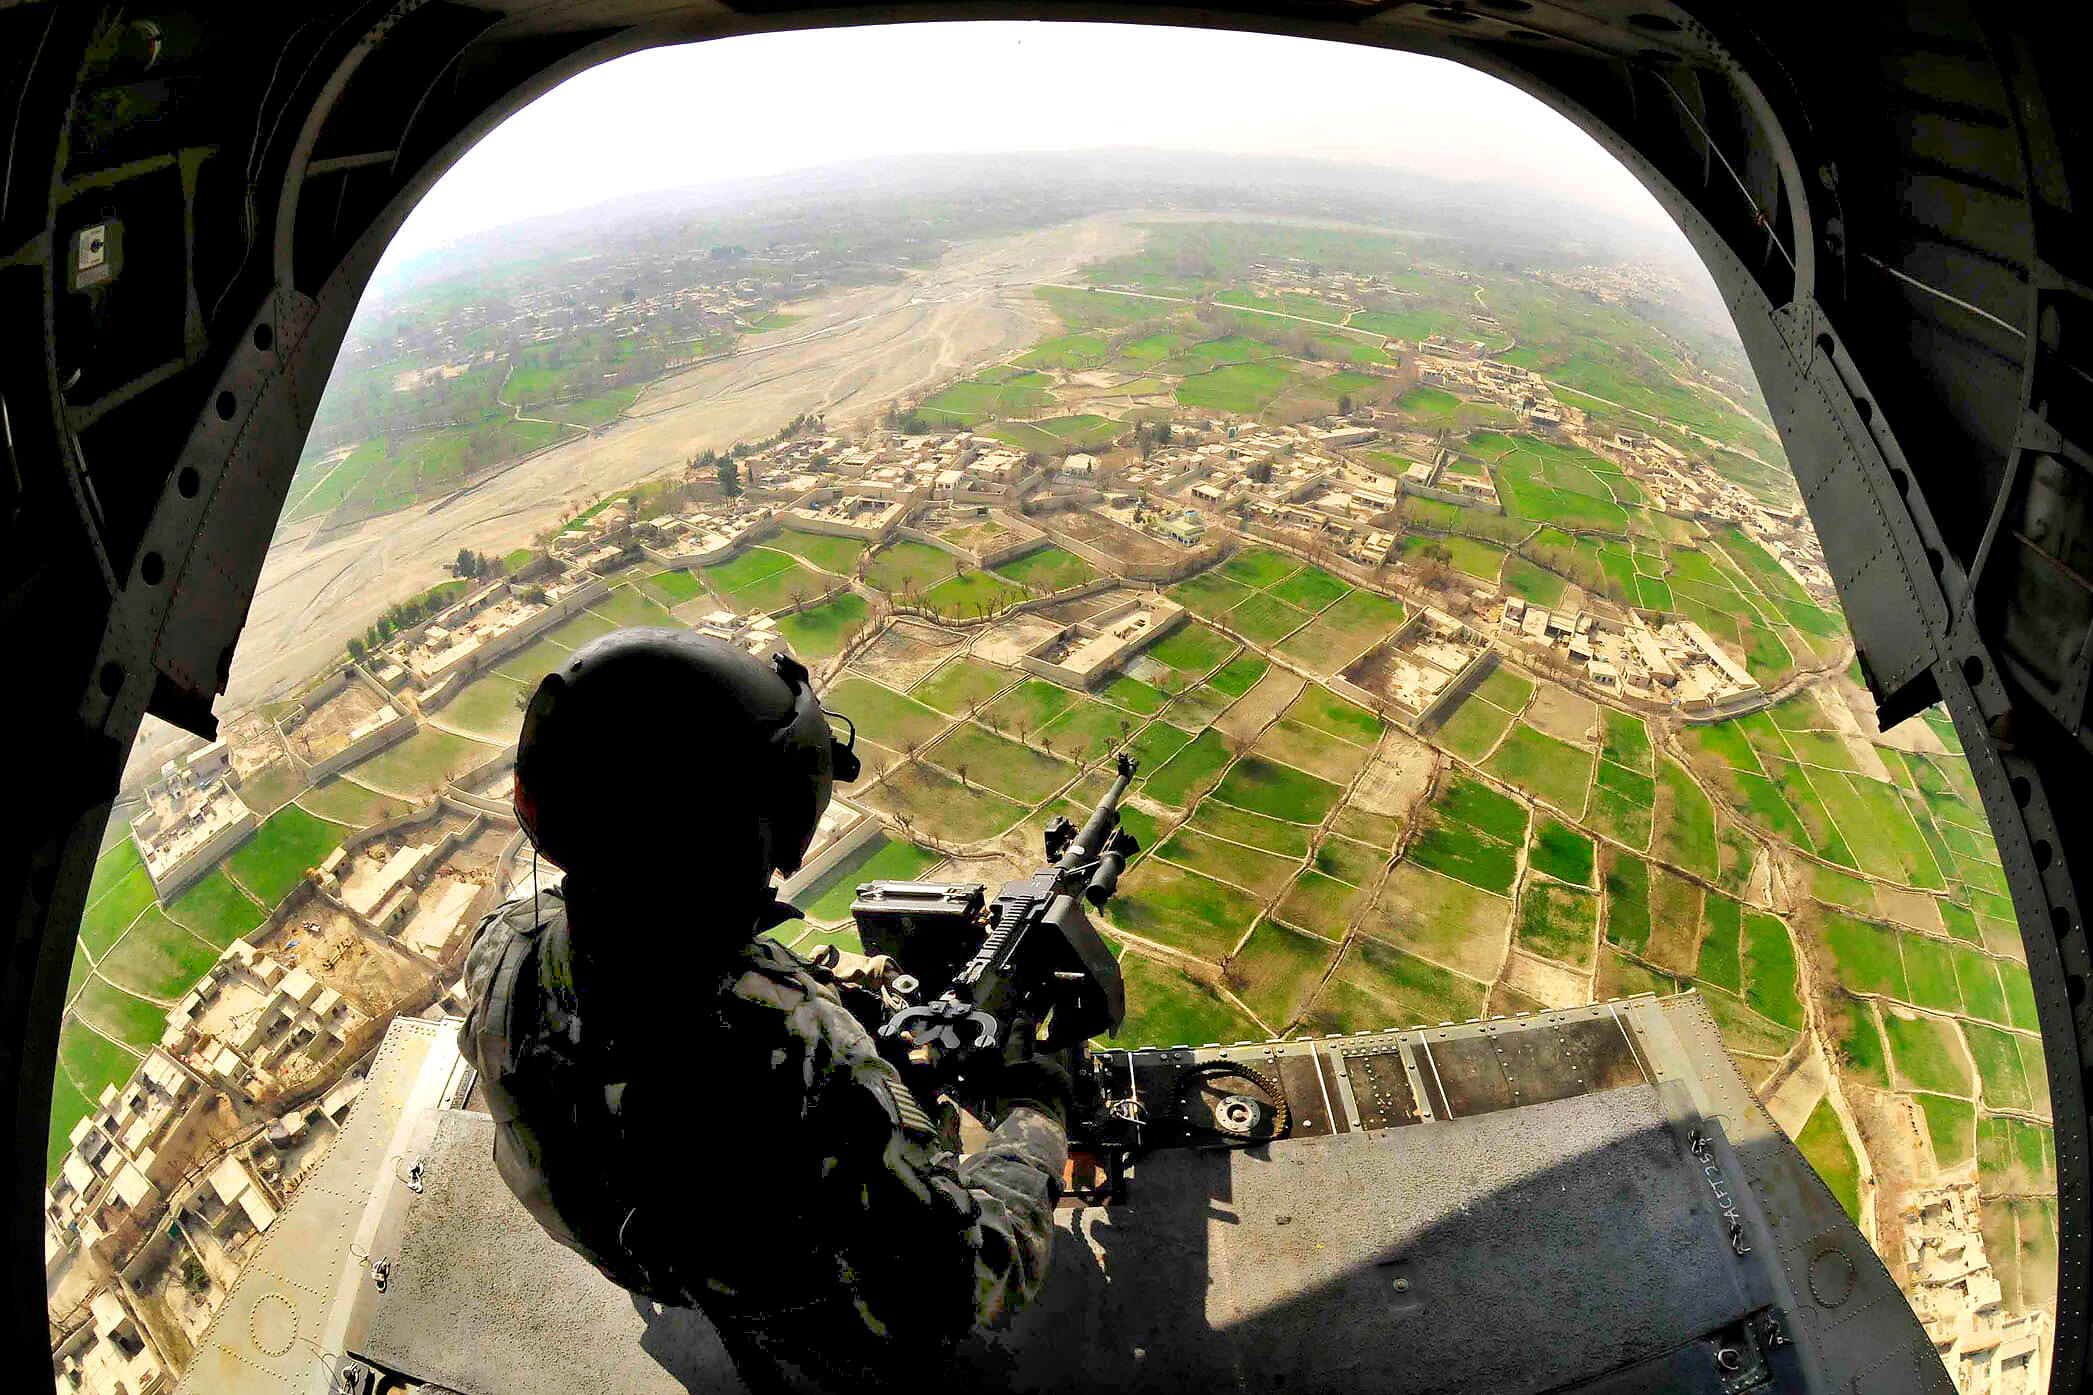 Kamminga-foto2-Sgt. 1st Class James Lee provides aerial security from the rear door of a CH-47 Chinook helicopter over the Khost province in eastern Afghanistan24b feb 2010-The U.S. Army-Flickr